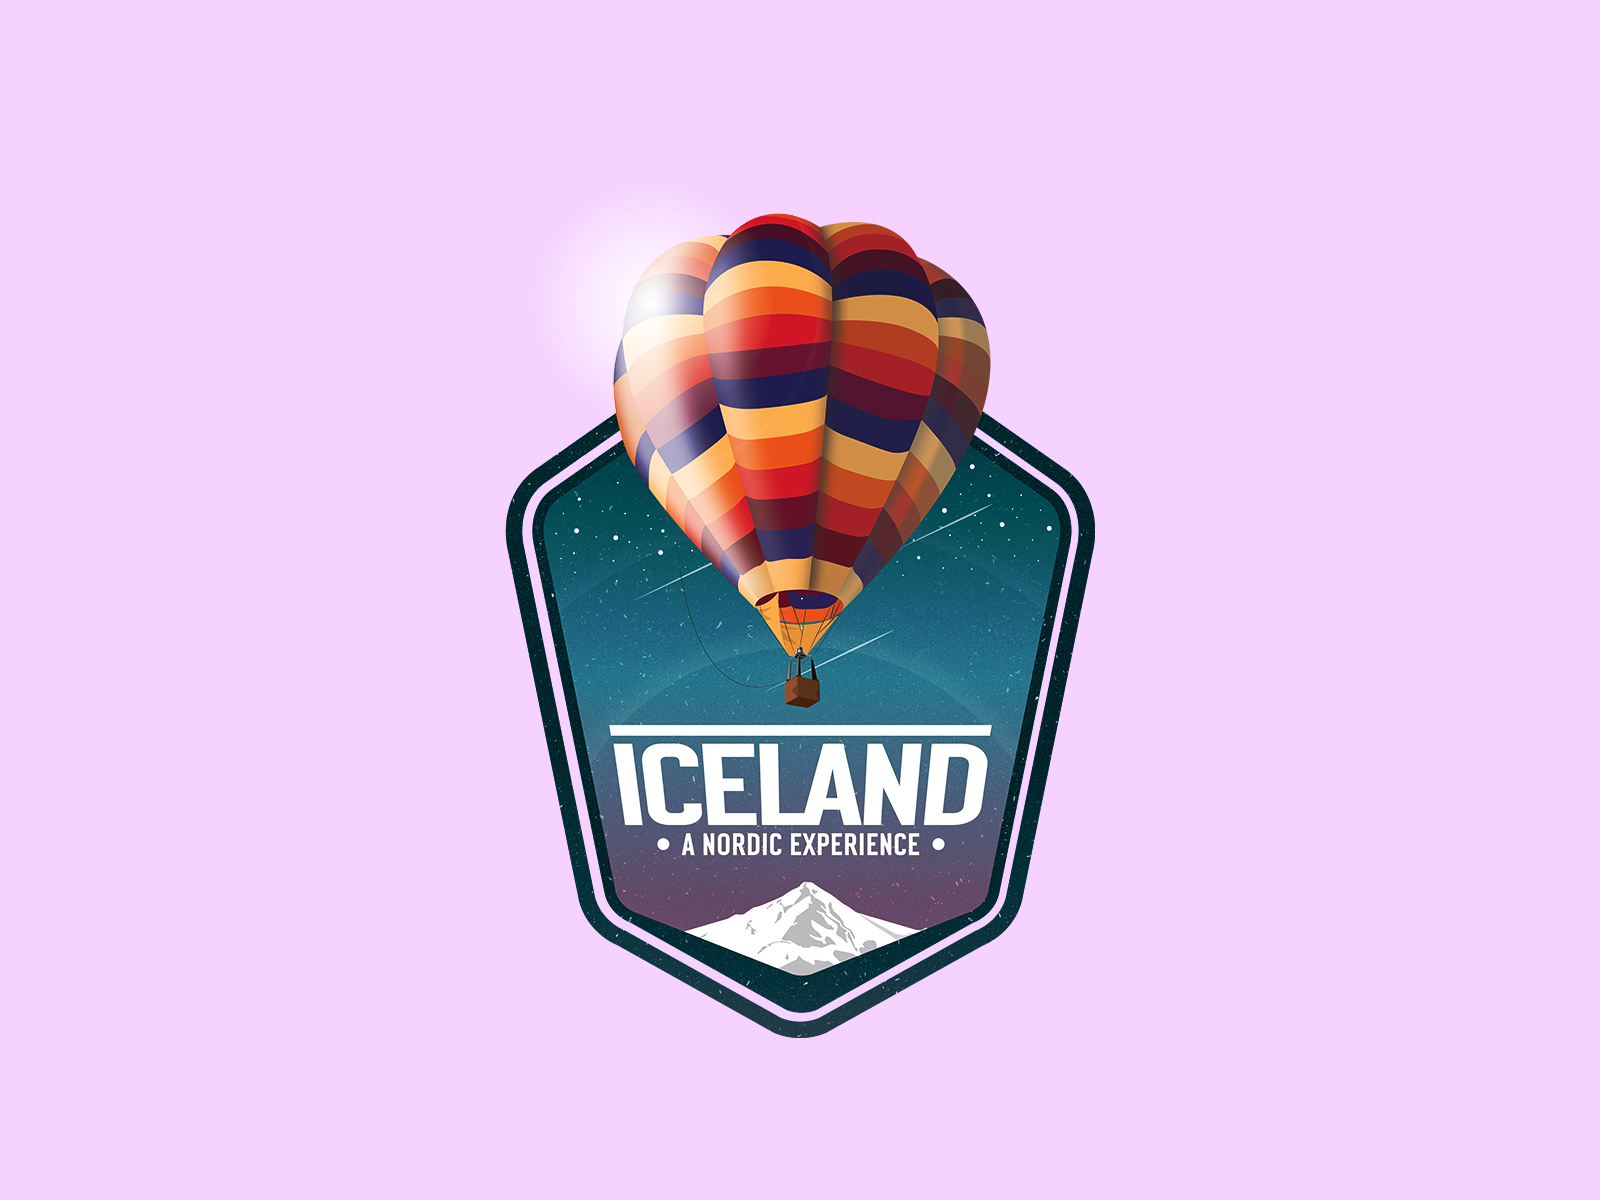 Iceland a nordic experience 4x